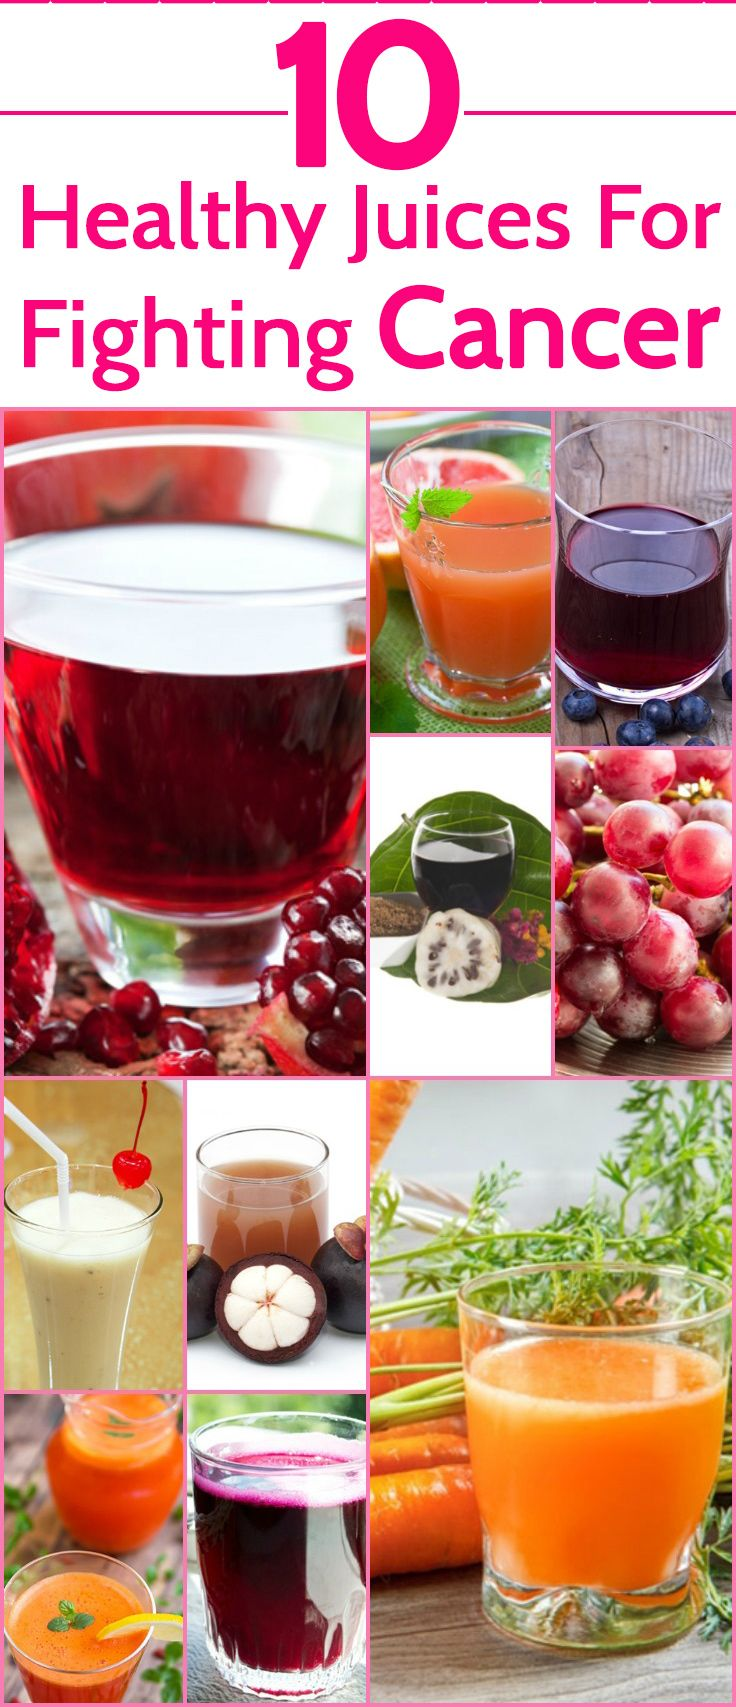 10 Healthy Juices For Fighting Cancer - Including healthy fruit juices is another important part of cancer treatment. This article gives the effective cancer fighting fruit juices that help in a ... #healthyrecipes   #healthyfood   #healthydiet   #healthyjuices  